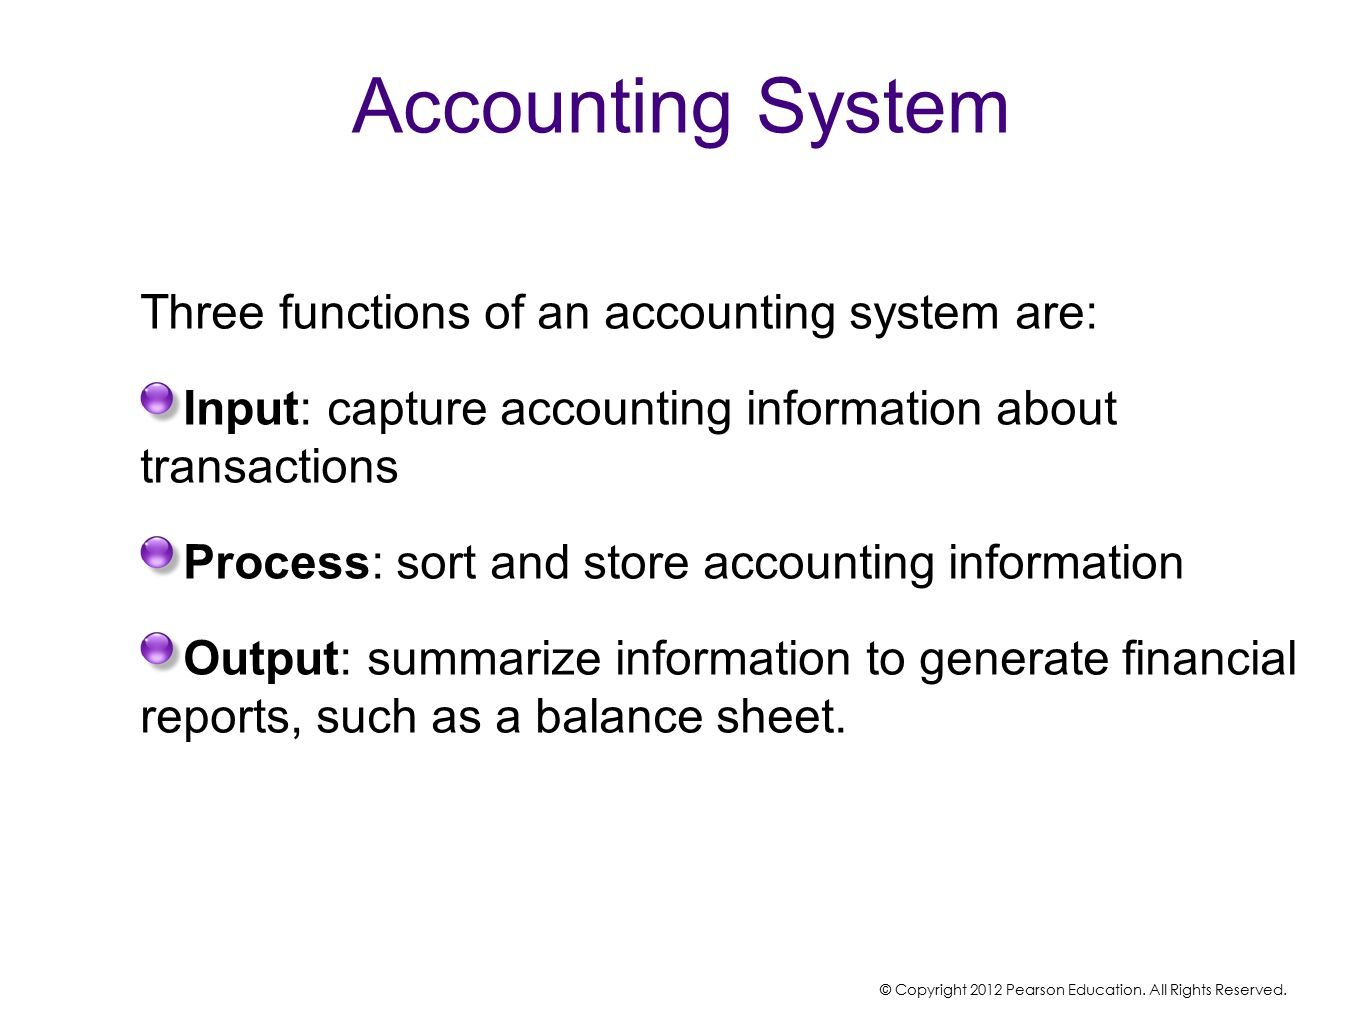 Accounting System Three functions of an accounting system are: Input: capture accounting information about transactions Process: sort and store accounting information Output: summarize information to generate financial reports, such as a balance sheet.